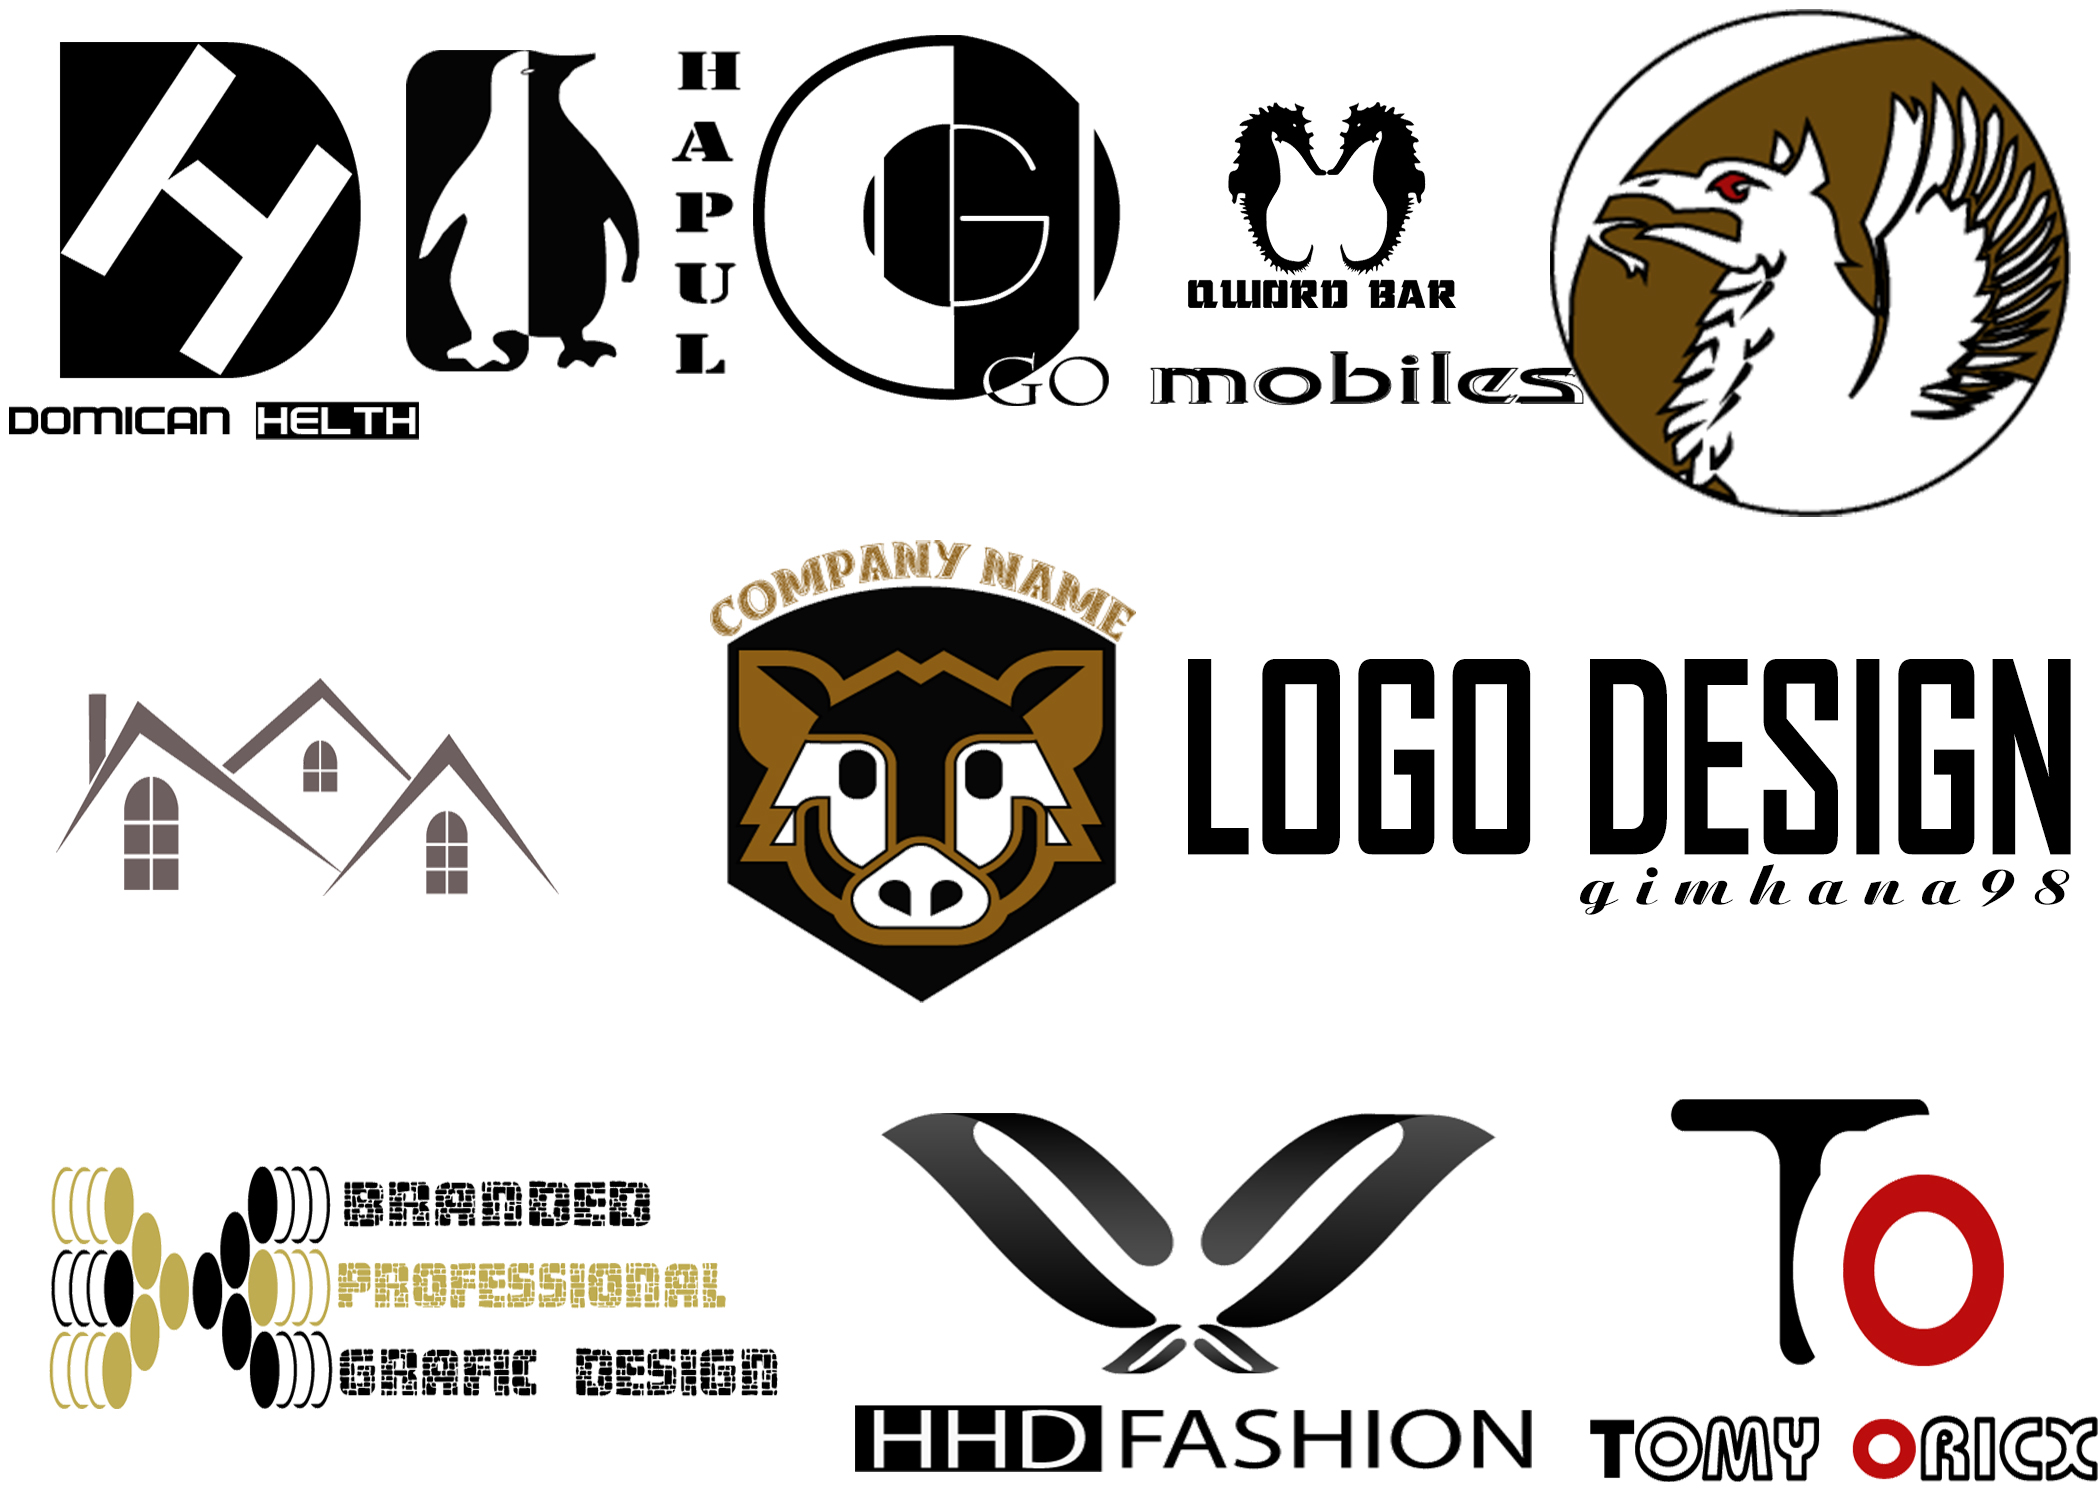 I will desin creative, unique logo in 24 hours